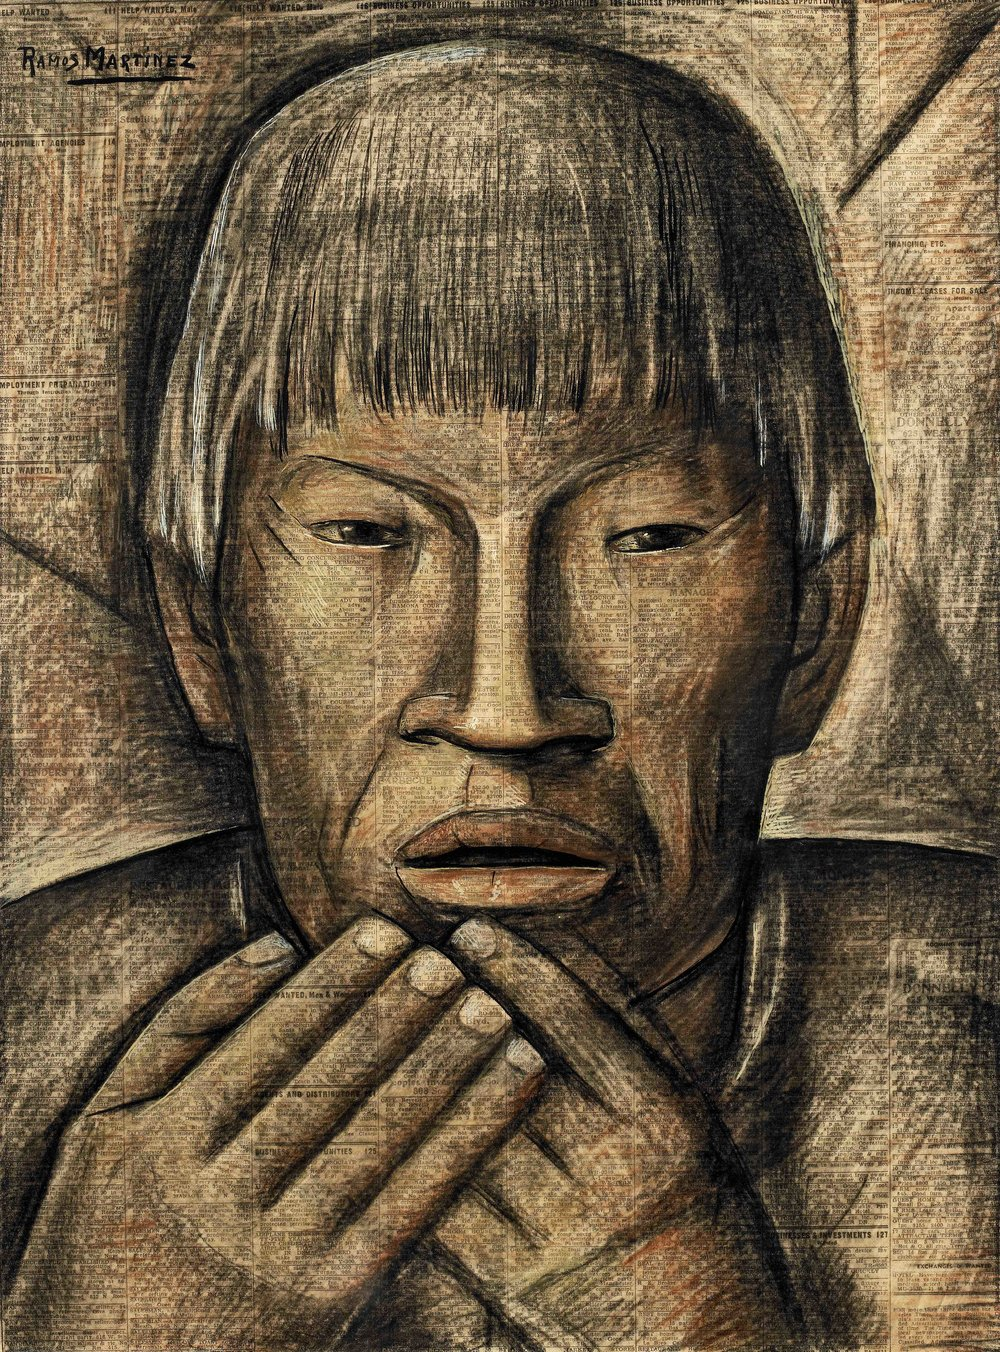 El Más Viejo del Pueblo / The Oldest Man in the Village  ca. 1935 tempera and Conté crayon on newsprint / temple y crayon Conté sobre papel periódico ( Los Angeles Times ) 21.1 x 15.6 inches / 53.7 x 39.7 centímetros Private collection